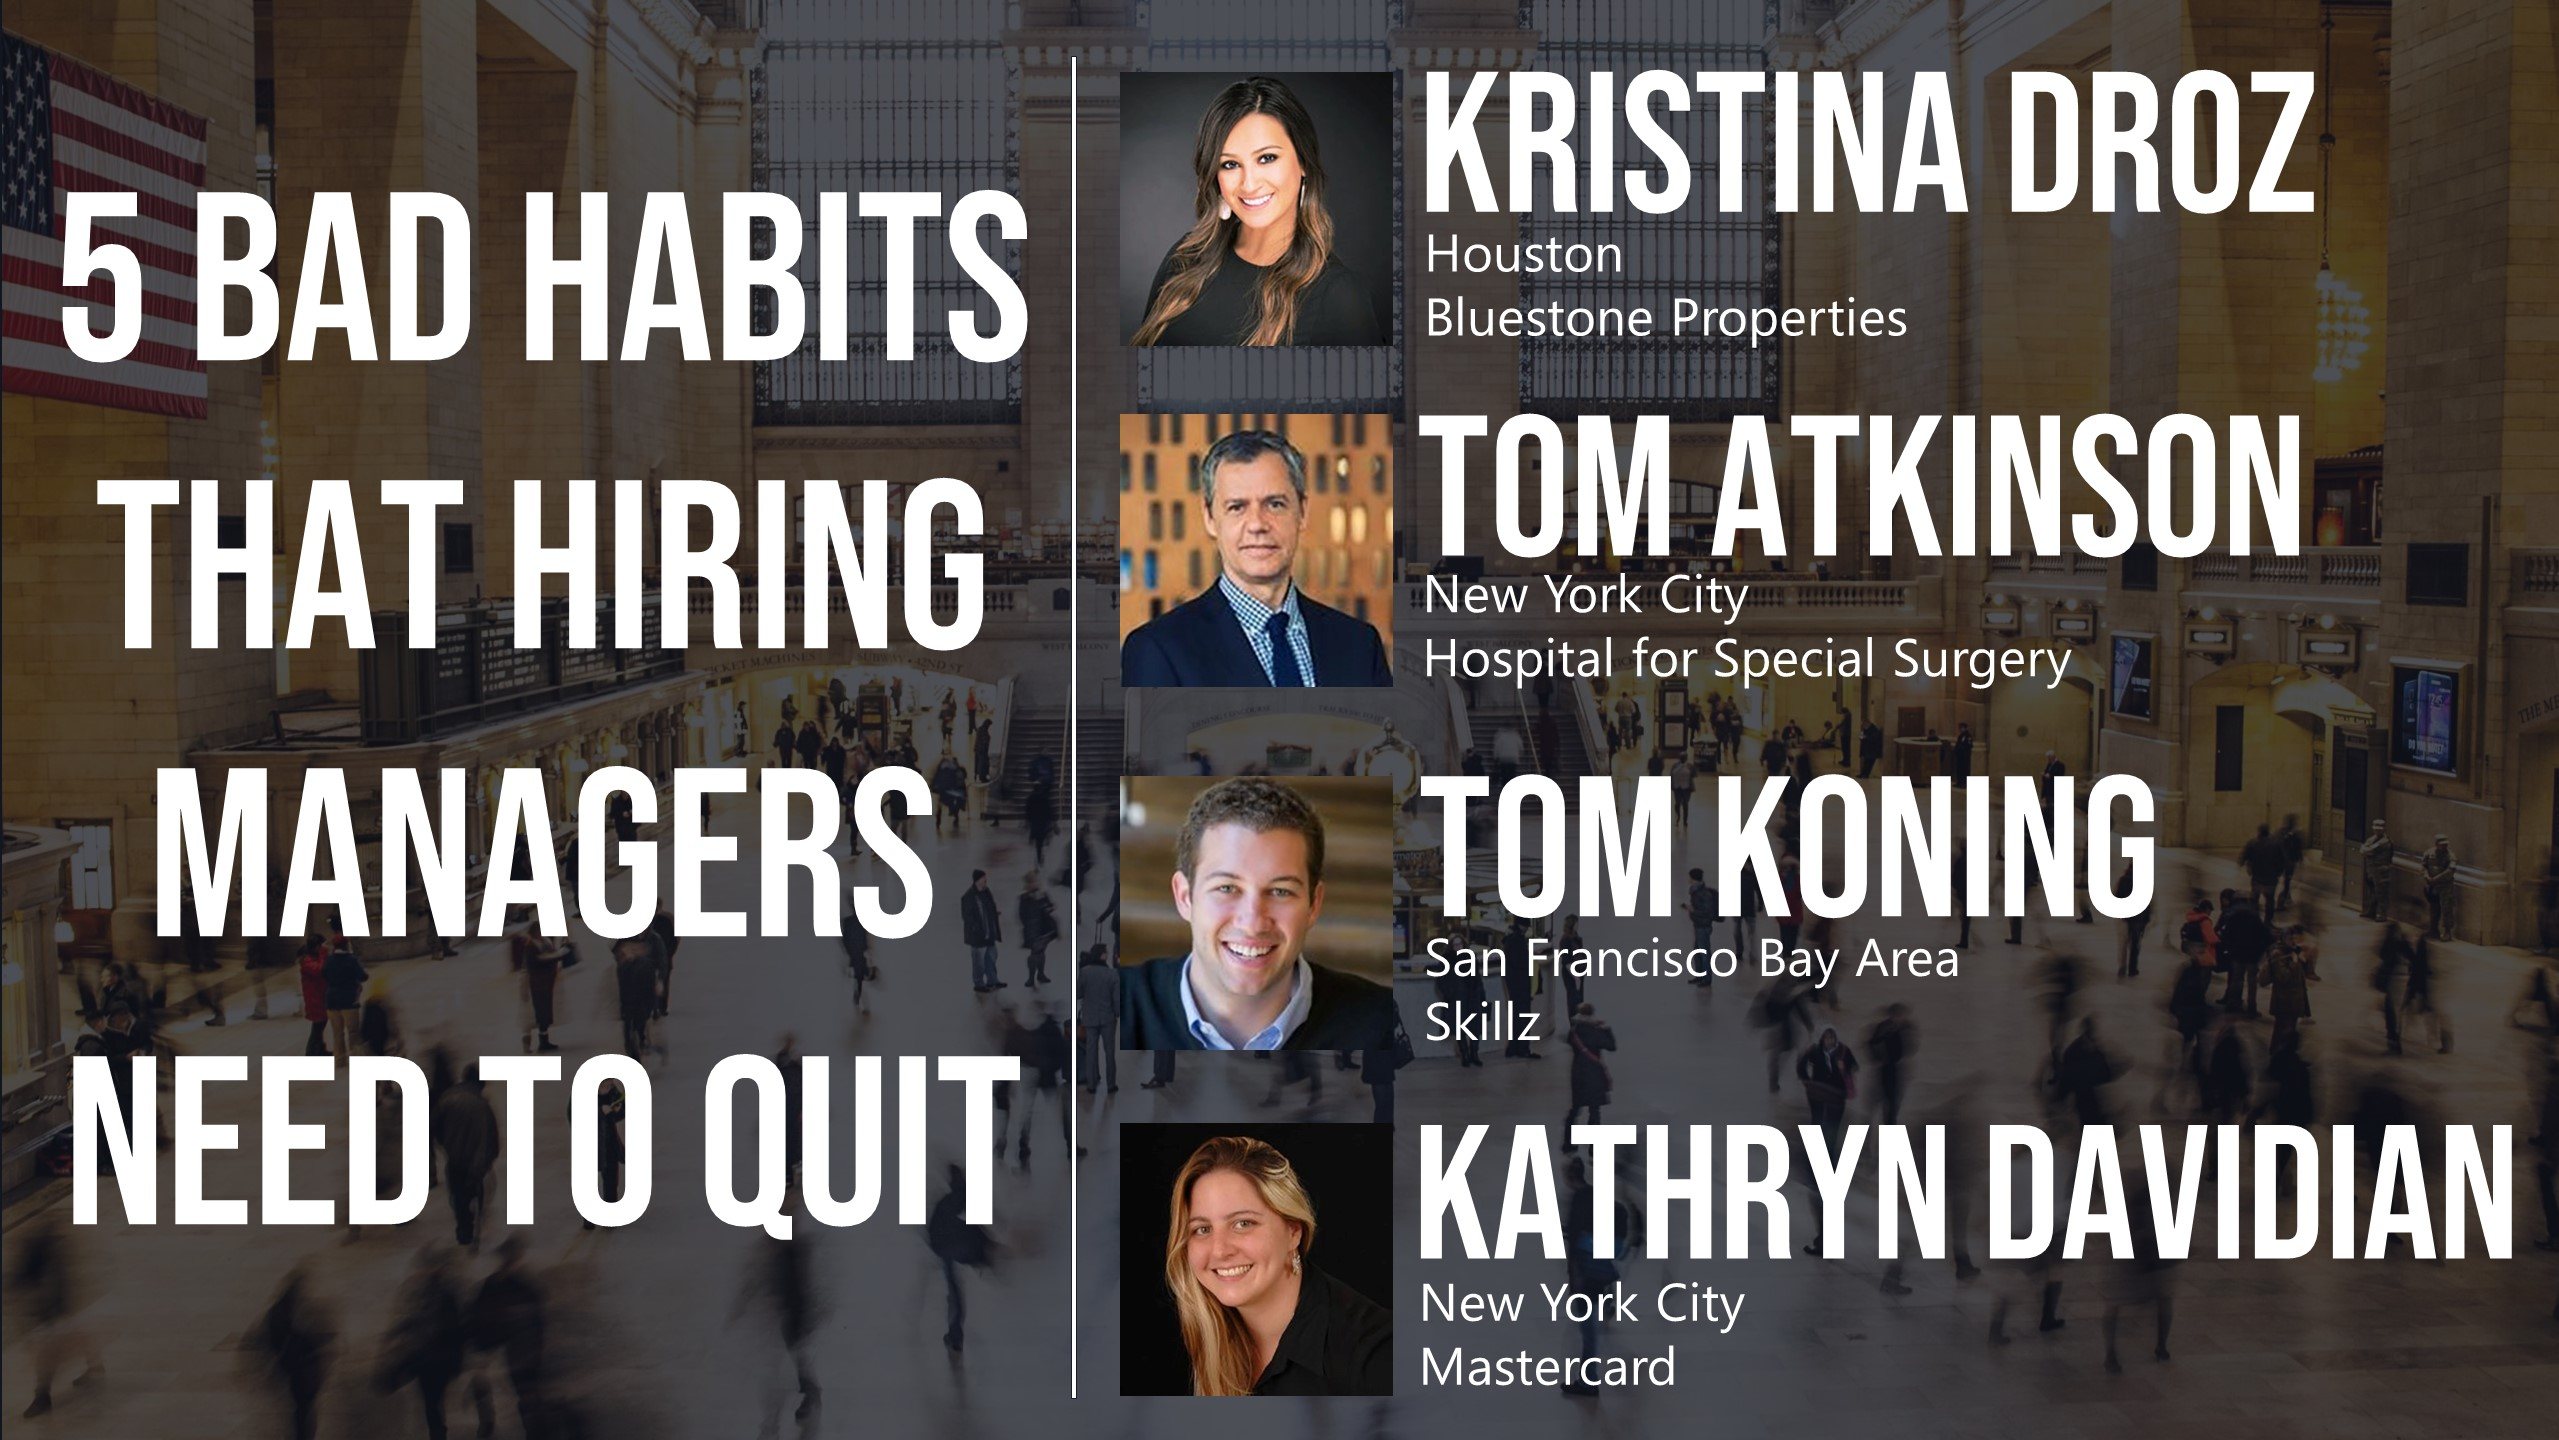 5 Bad Habits that Hiring Managers Need to Quit